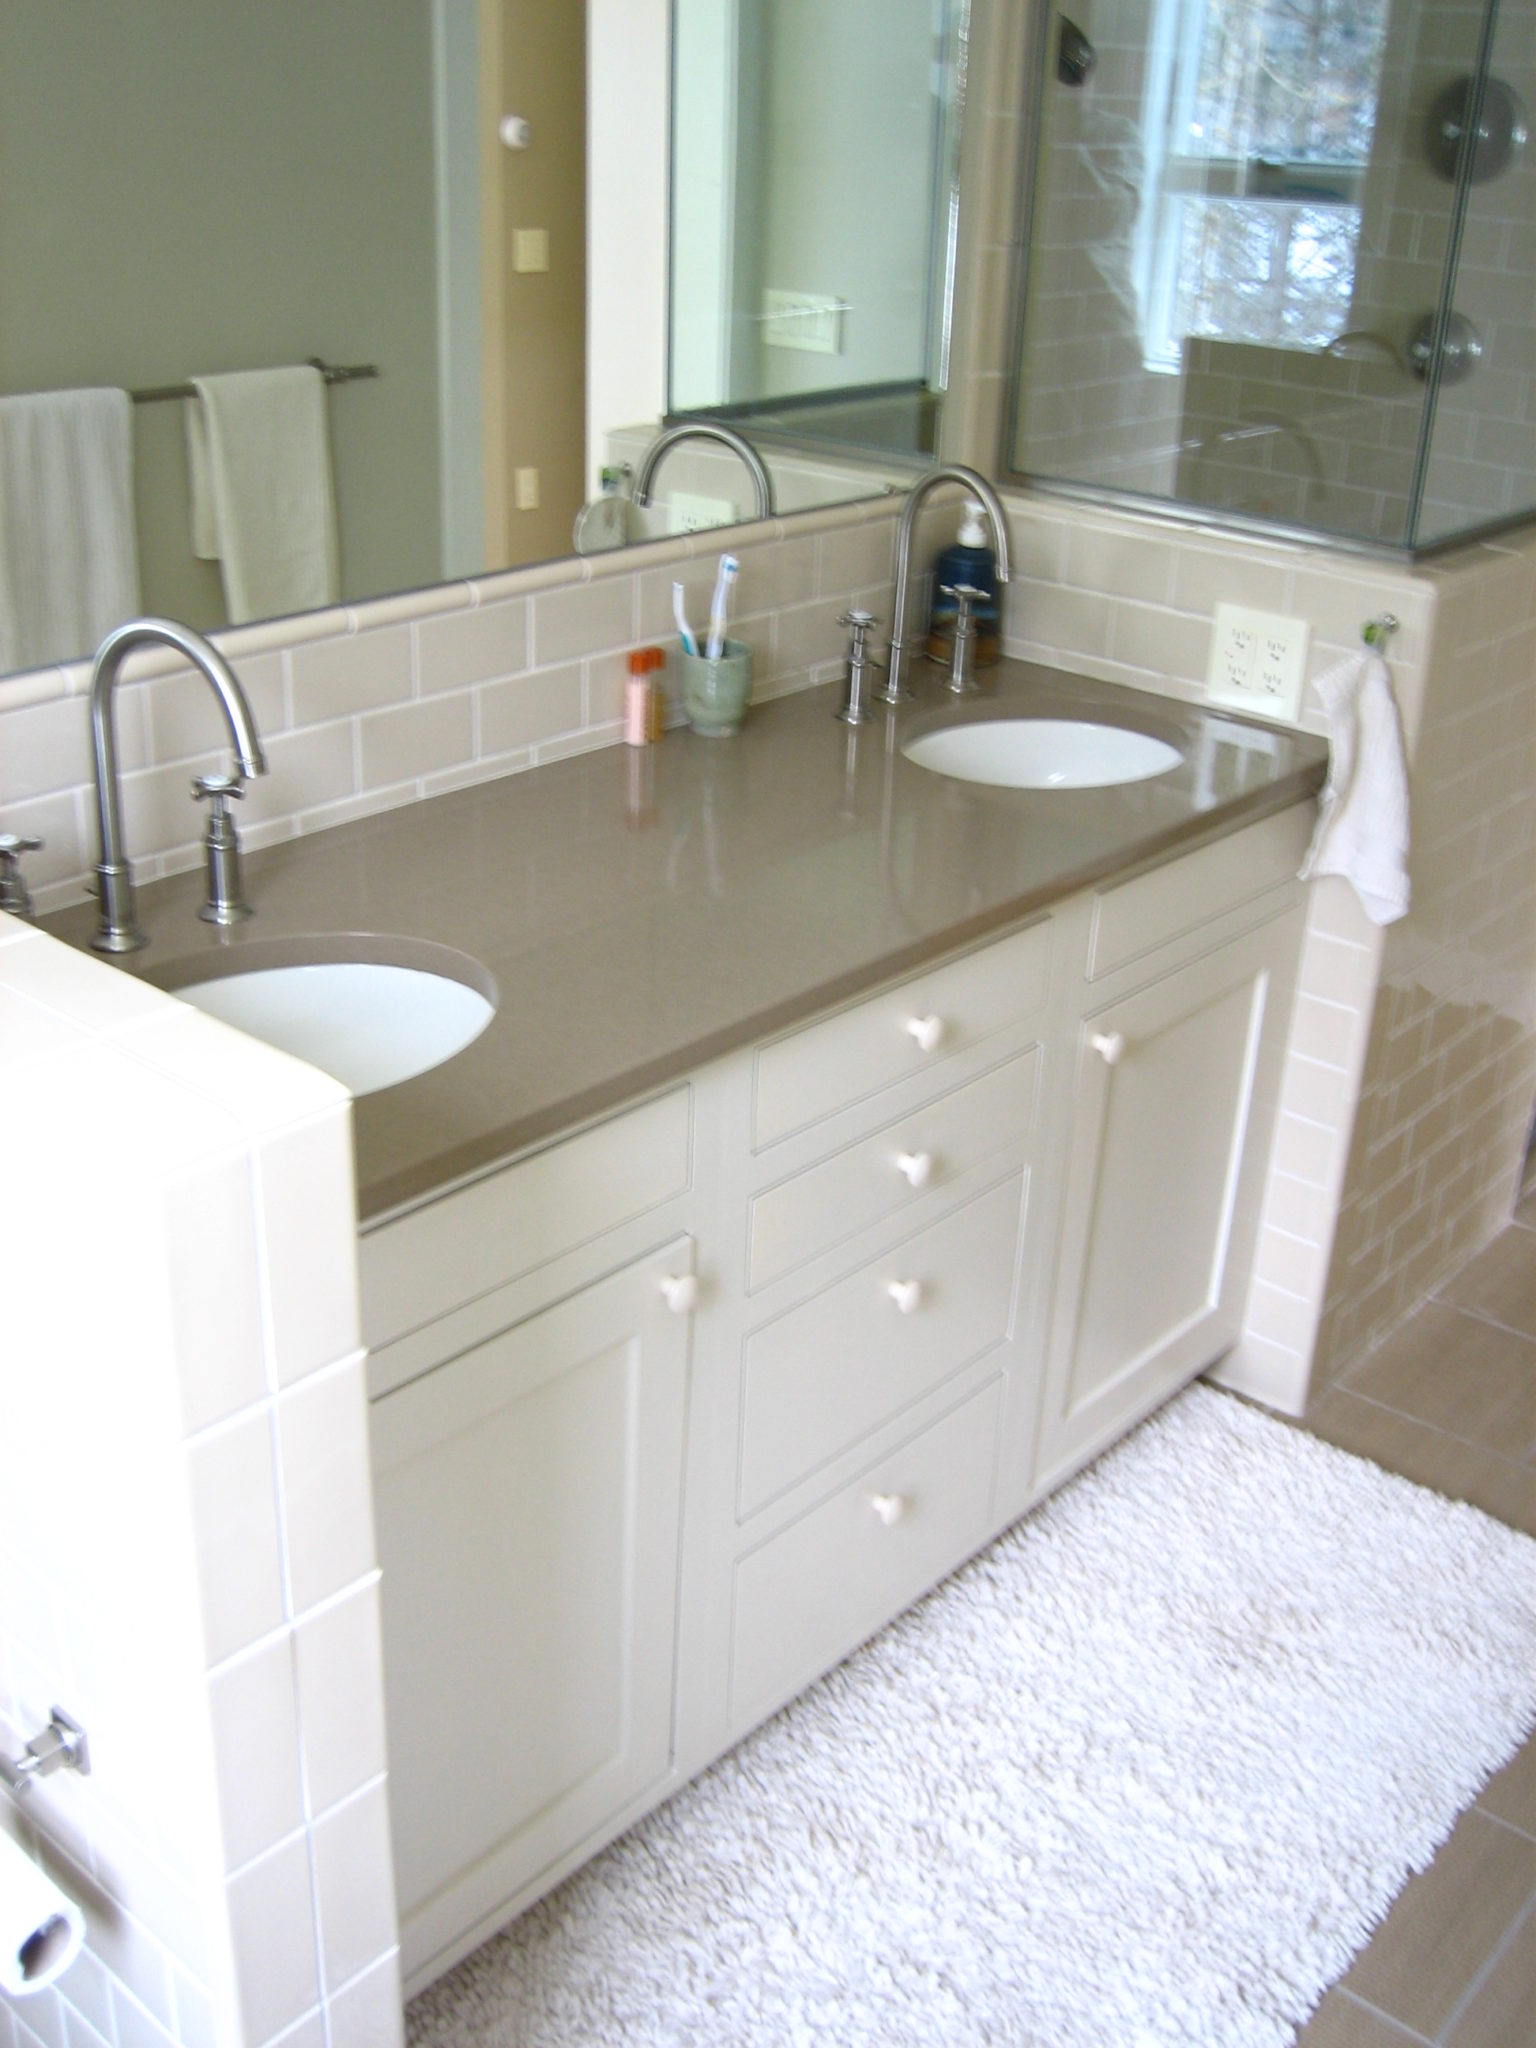 vanity cabinetry, bath cabinets